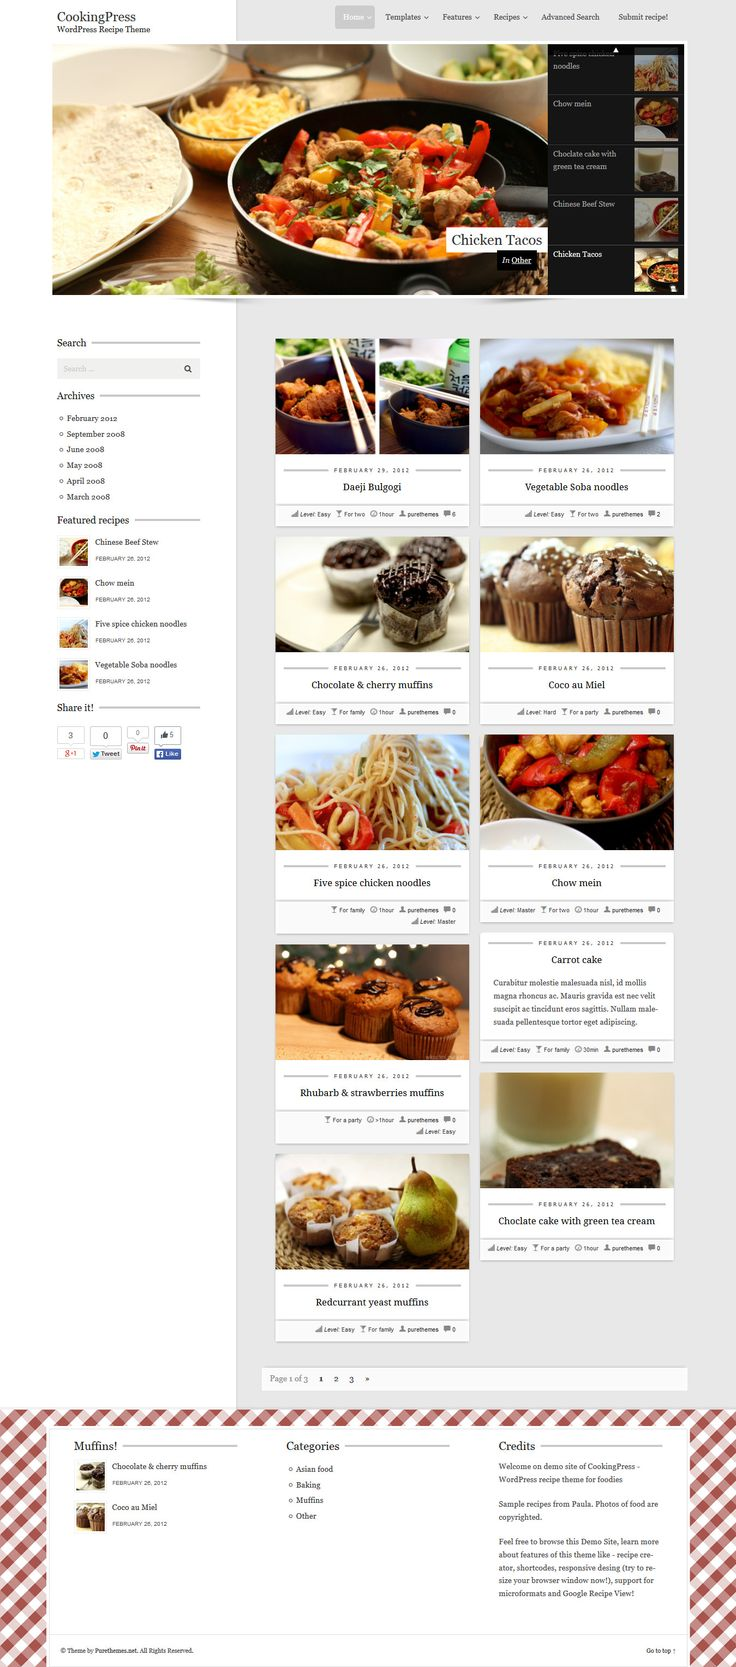 Mejores 858 imgenes de wordpress themes en pinterest tema de cookingpress recipe food wordpress theme webdesign website download http forumfinder